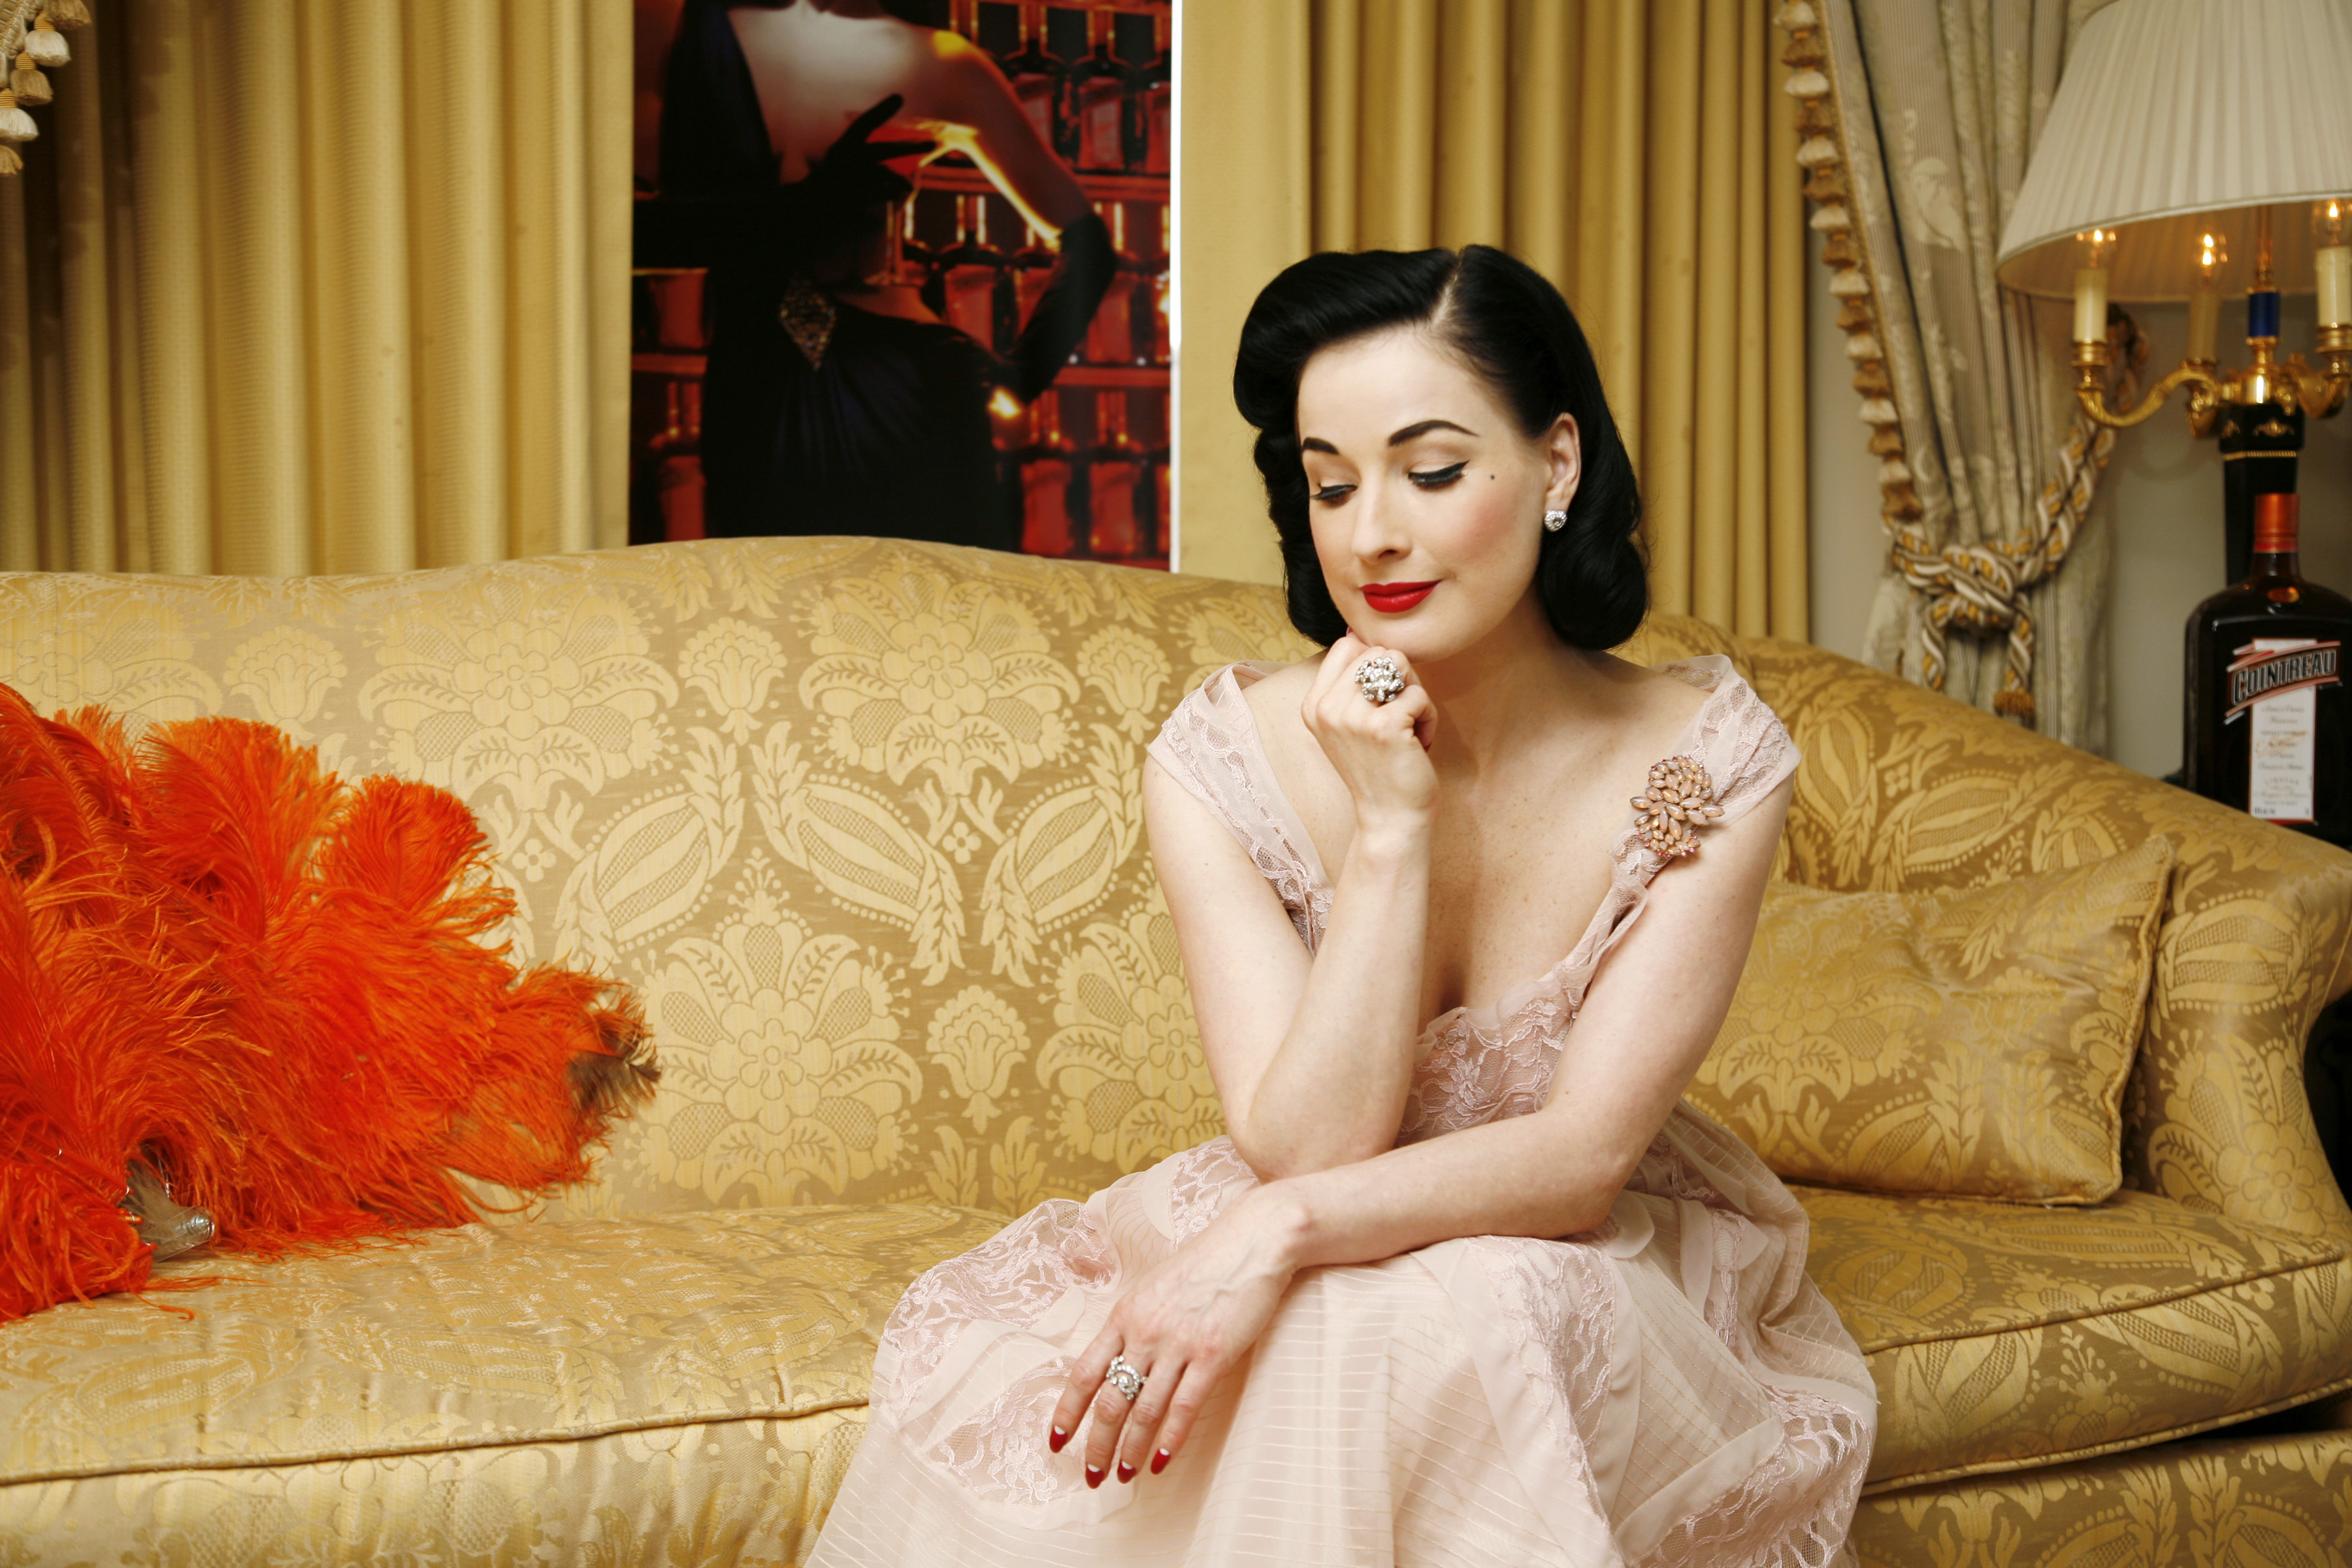 dita von teese wide hd wallpaper 52112